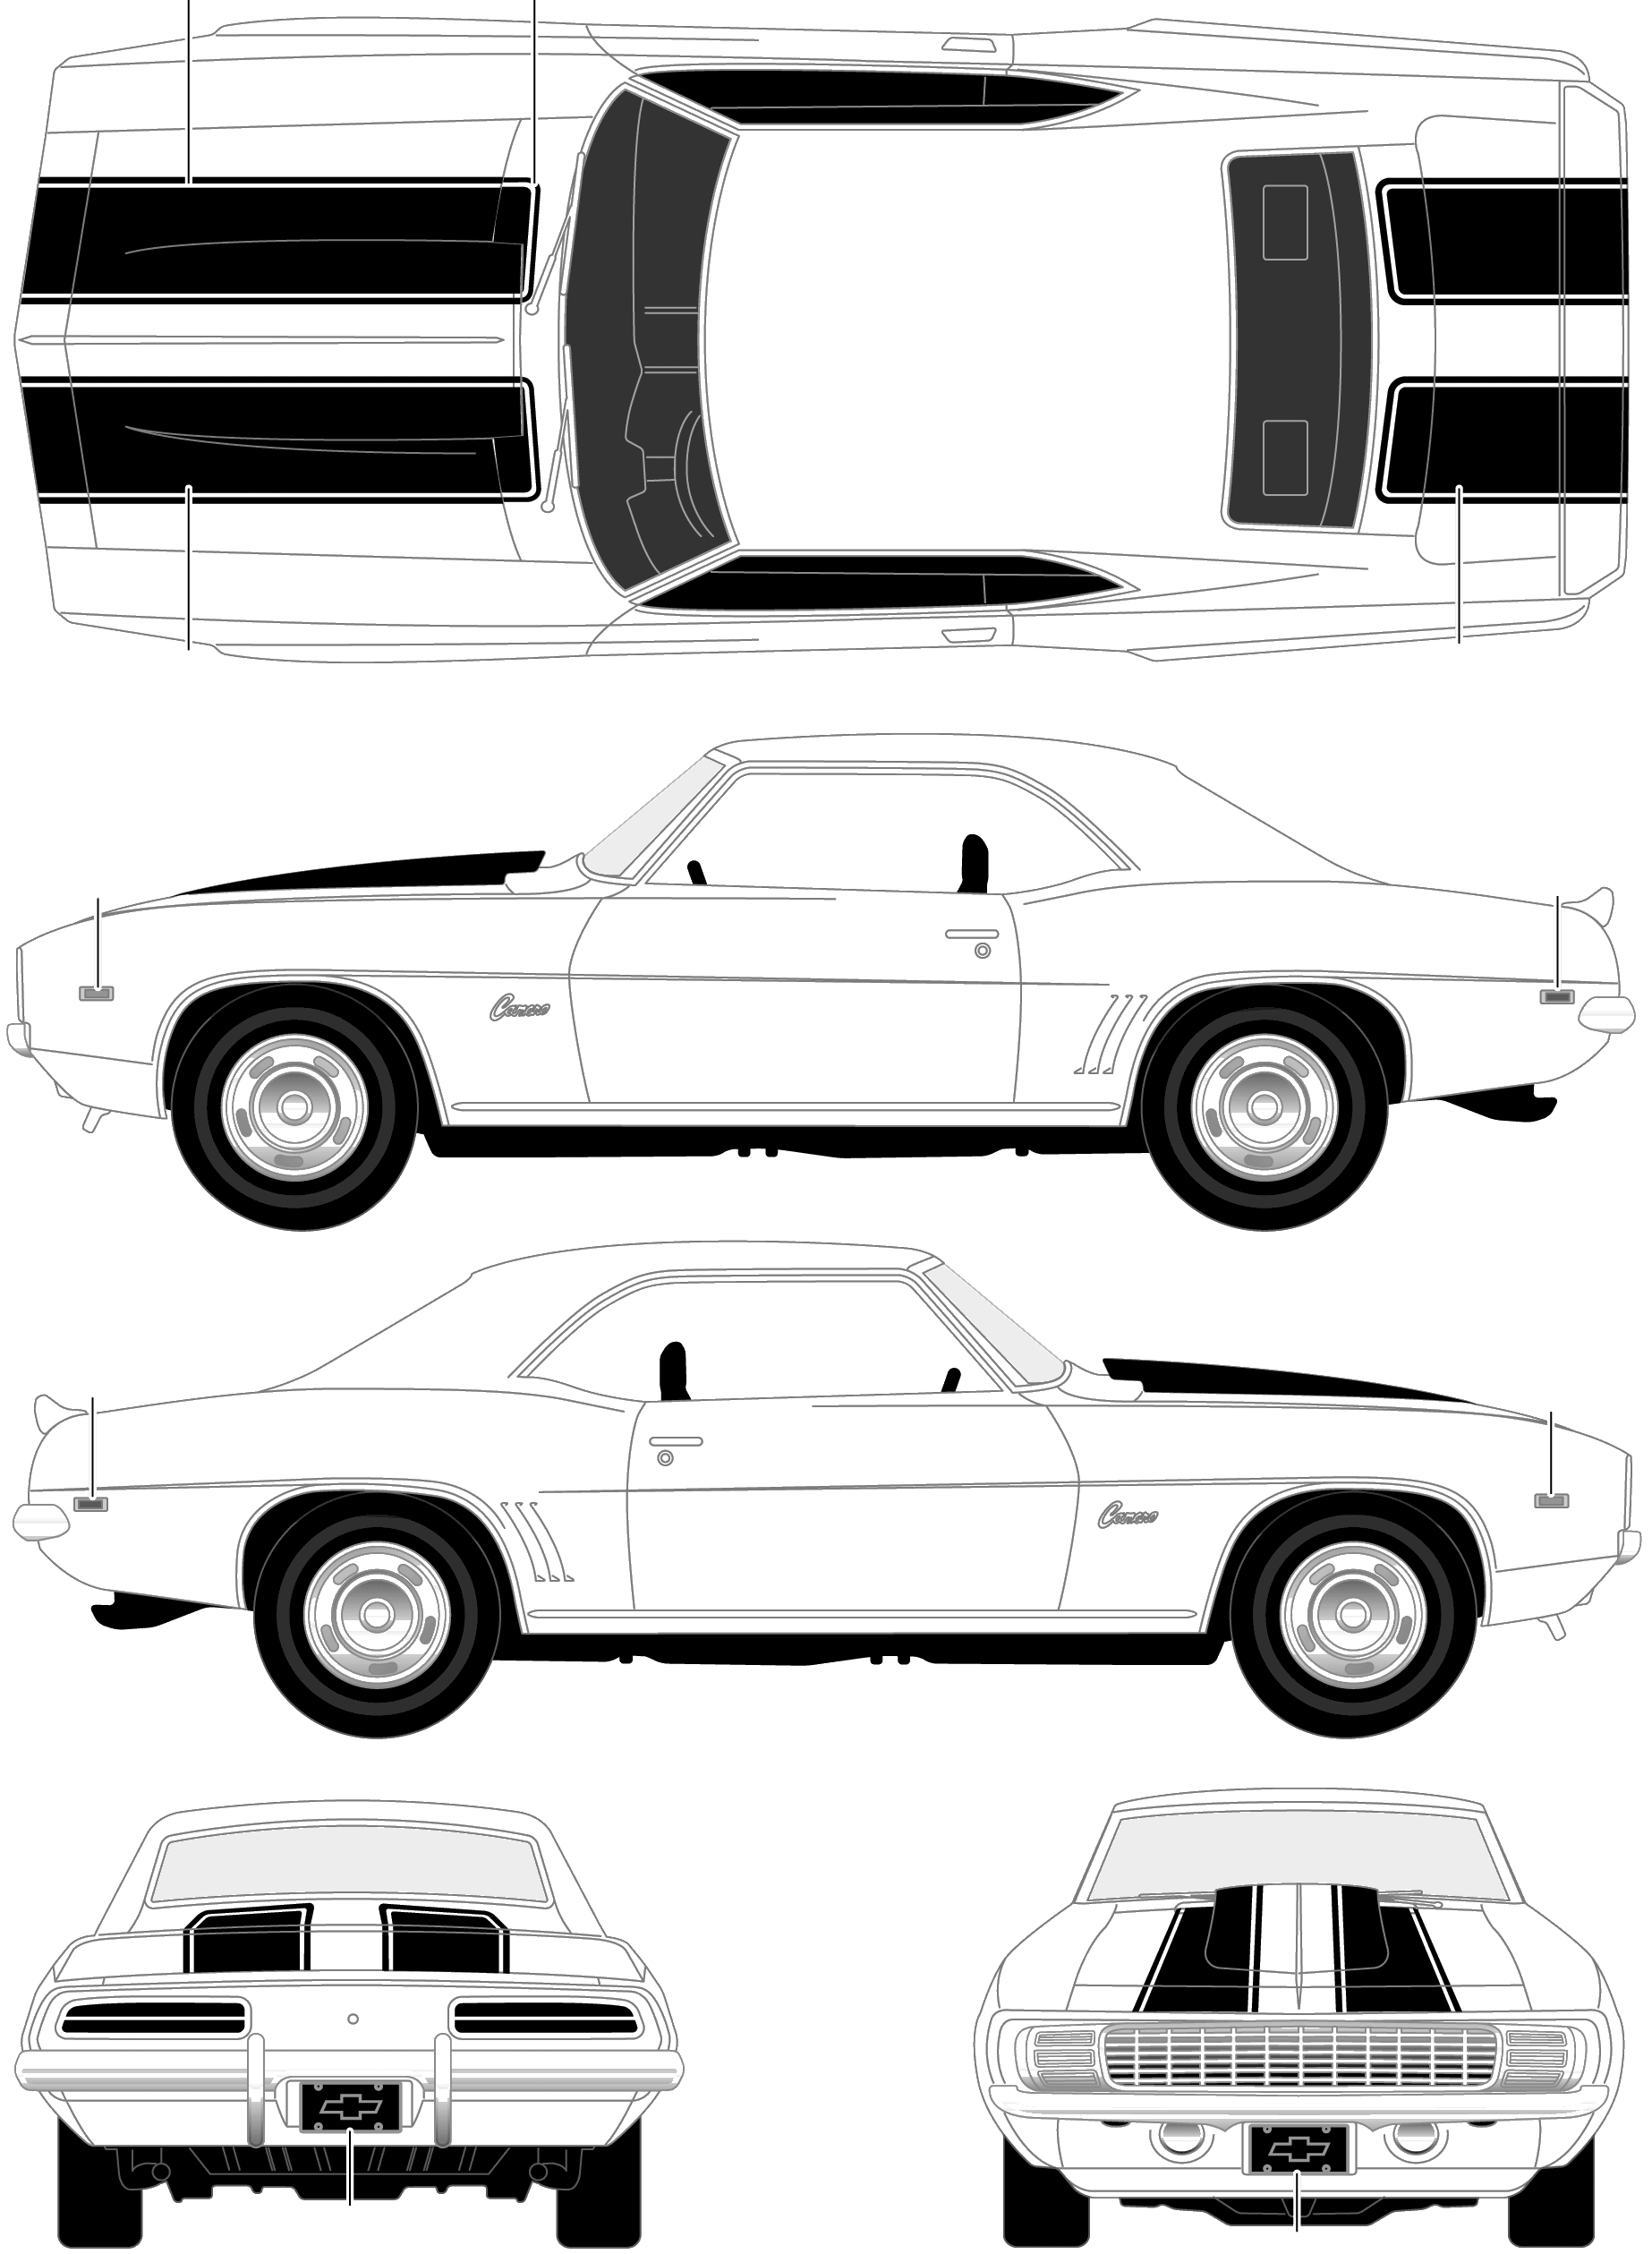 Pin by Ed Schwoerer on Chevrolet camaro 1969 in 2020